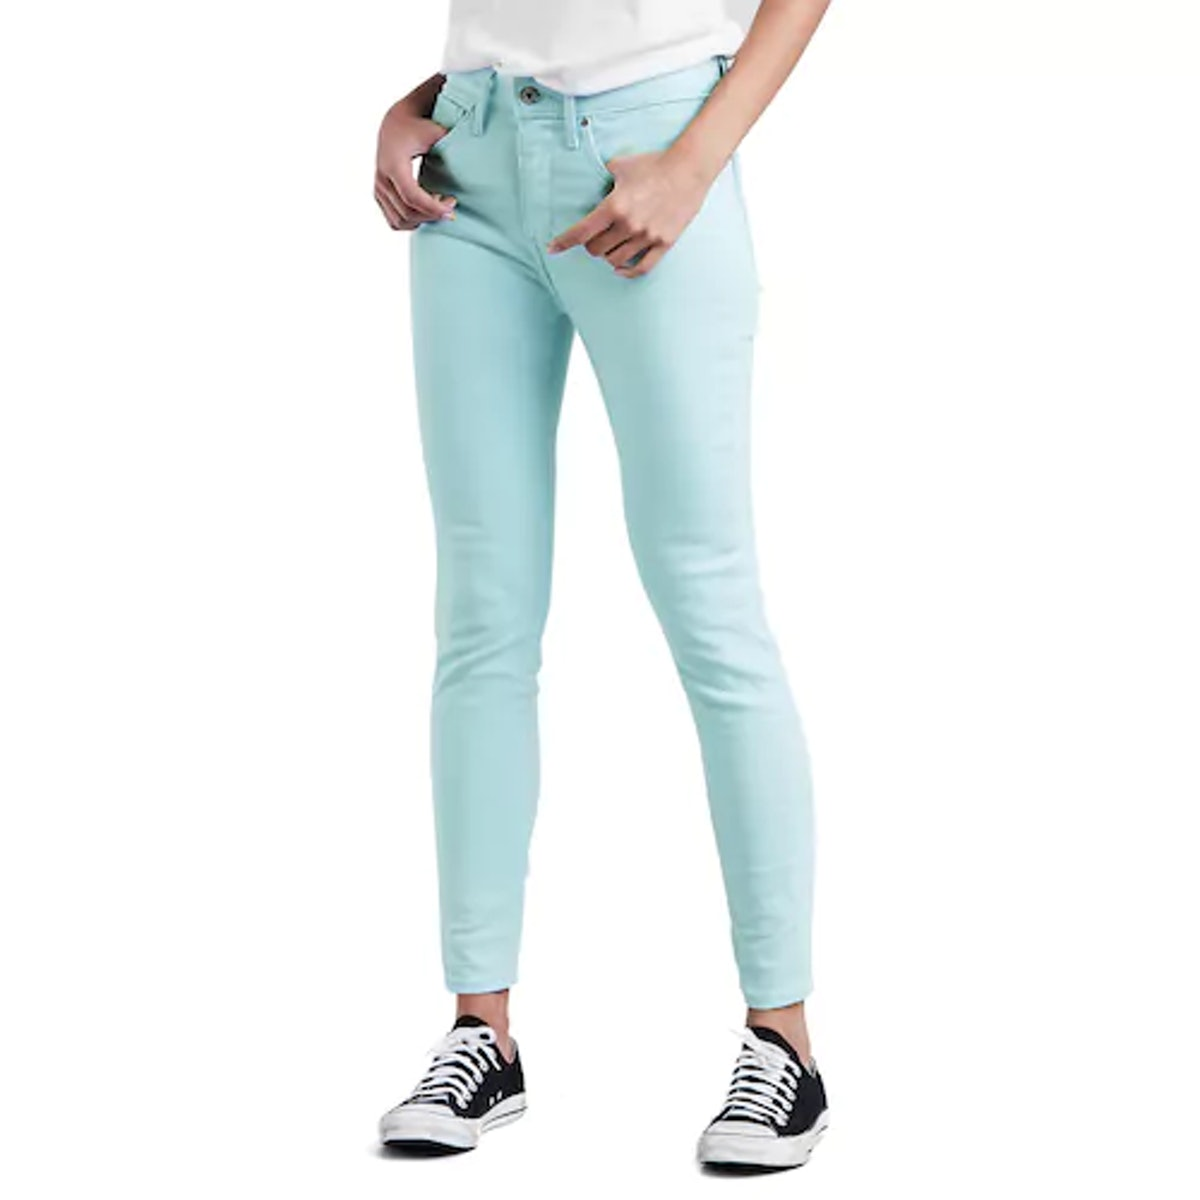 Women's Levi's 721 High-Rise Skinny Ankle Jeans